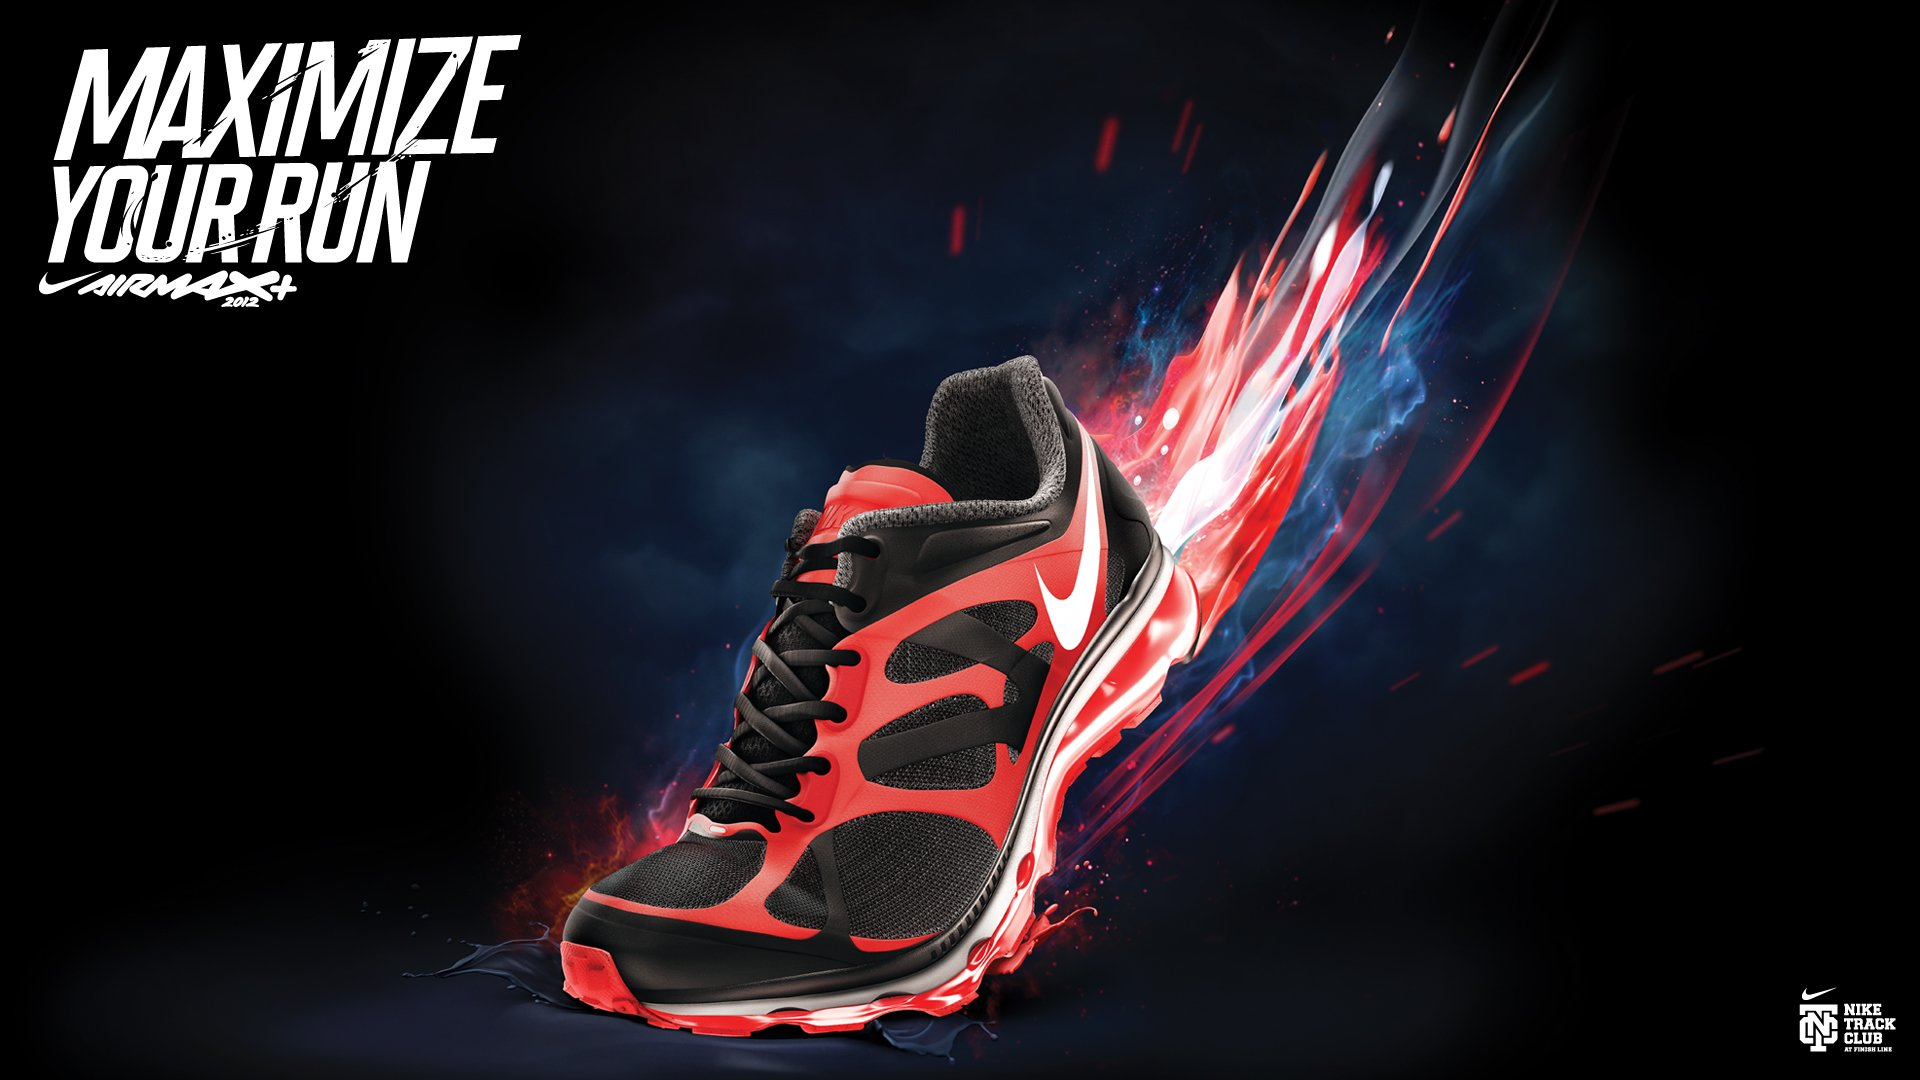 Sport Wallpaper Nike: NIKE Sports Shoes Product Logo Poster Advertising Products